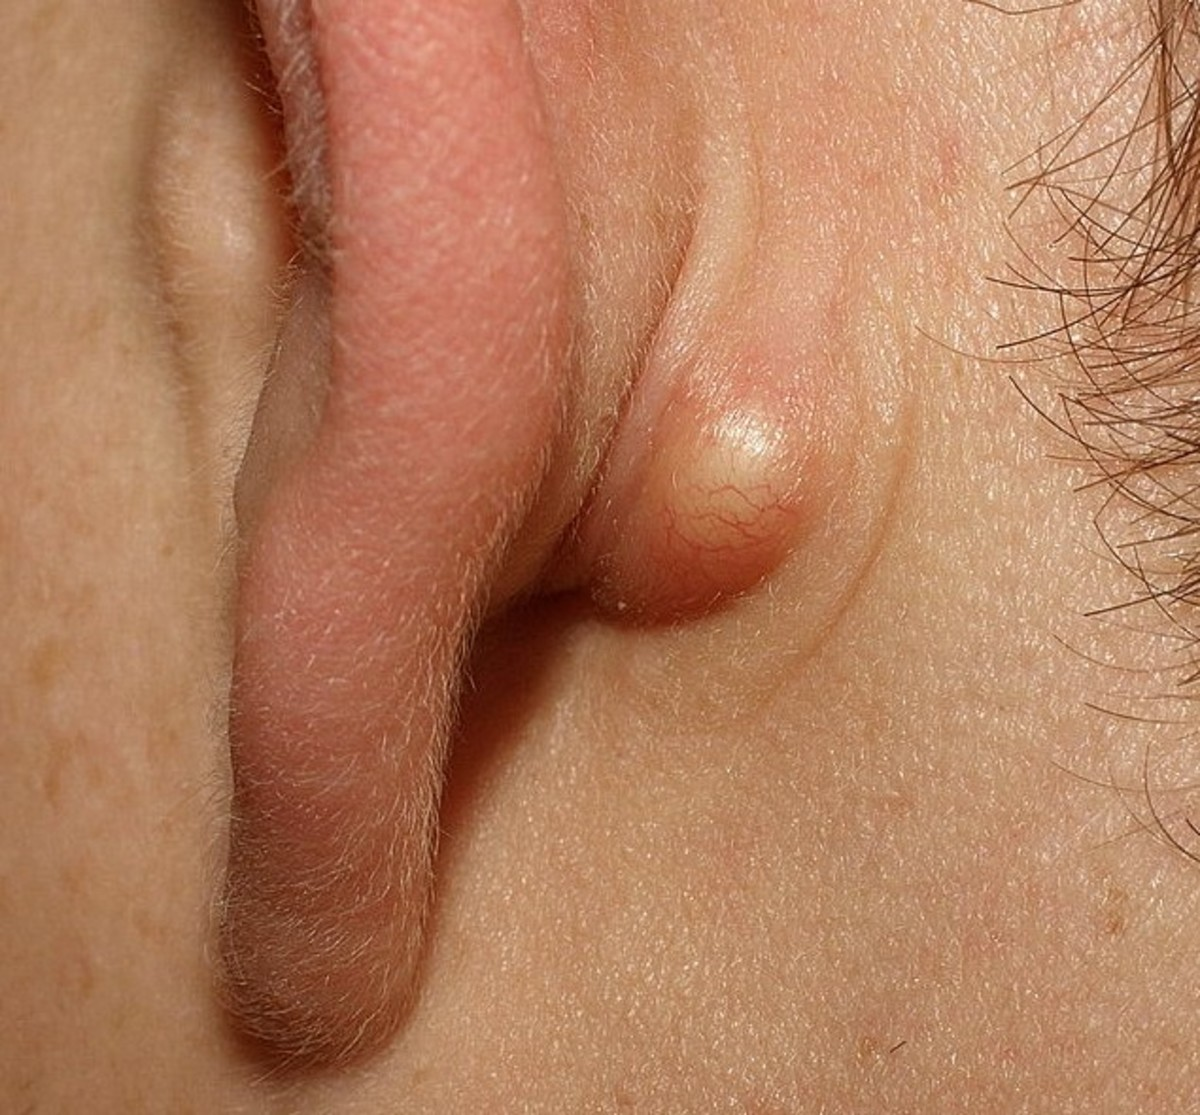 Sebaceous Cyst Causes, Symptoms, Treatment, and Pictures